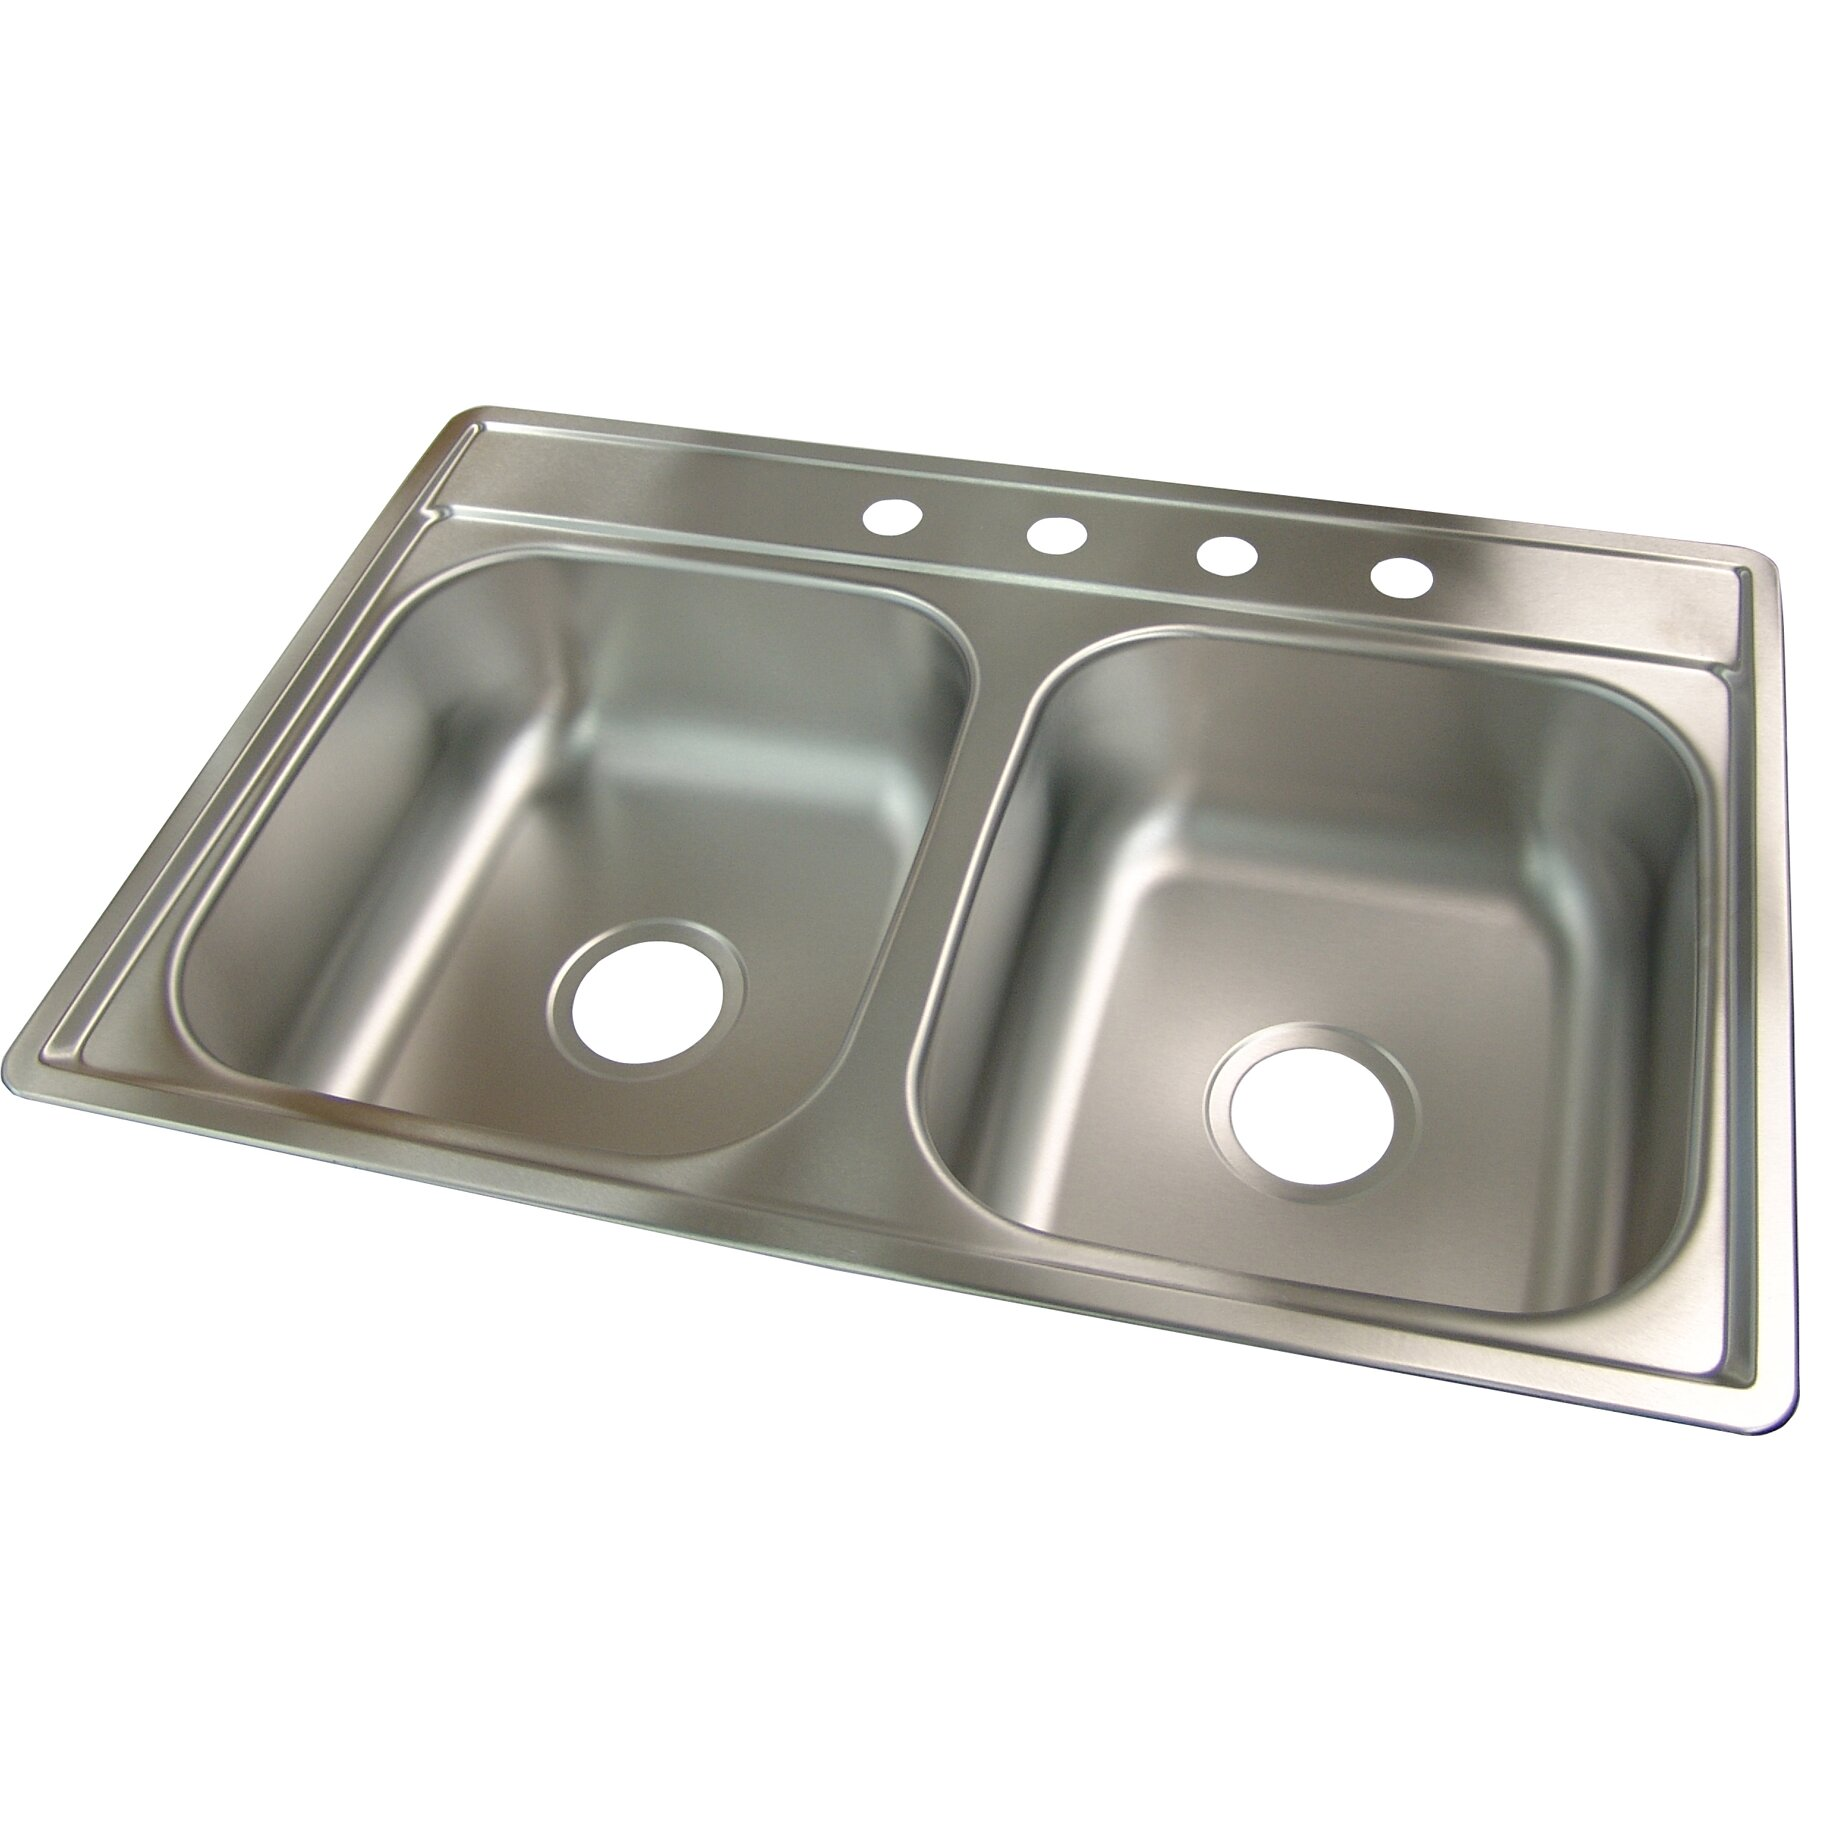 Kindred Kitchen Sinks : Franke Kindred 33